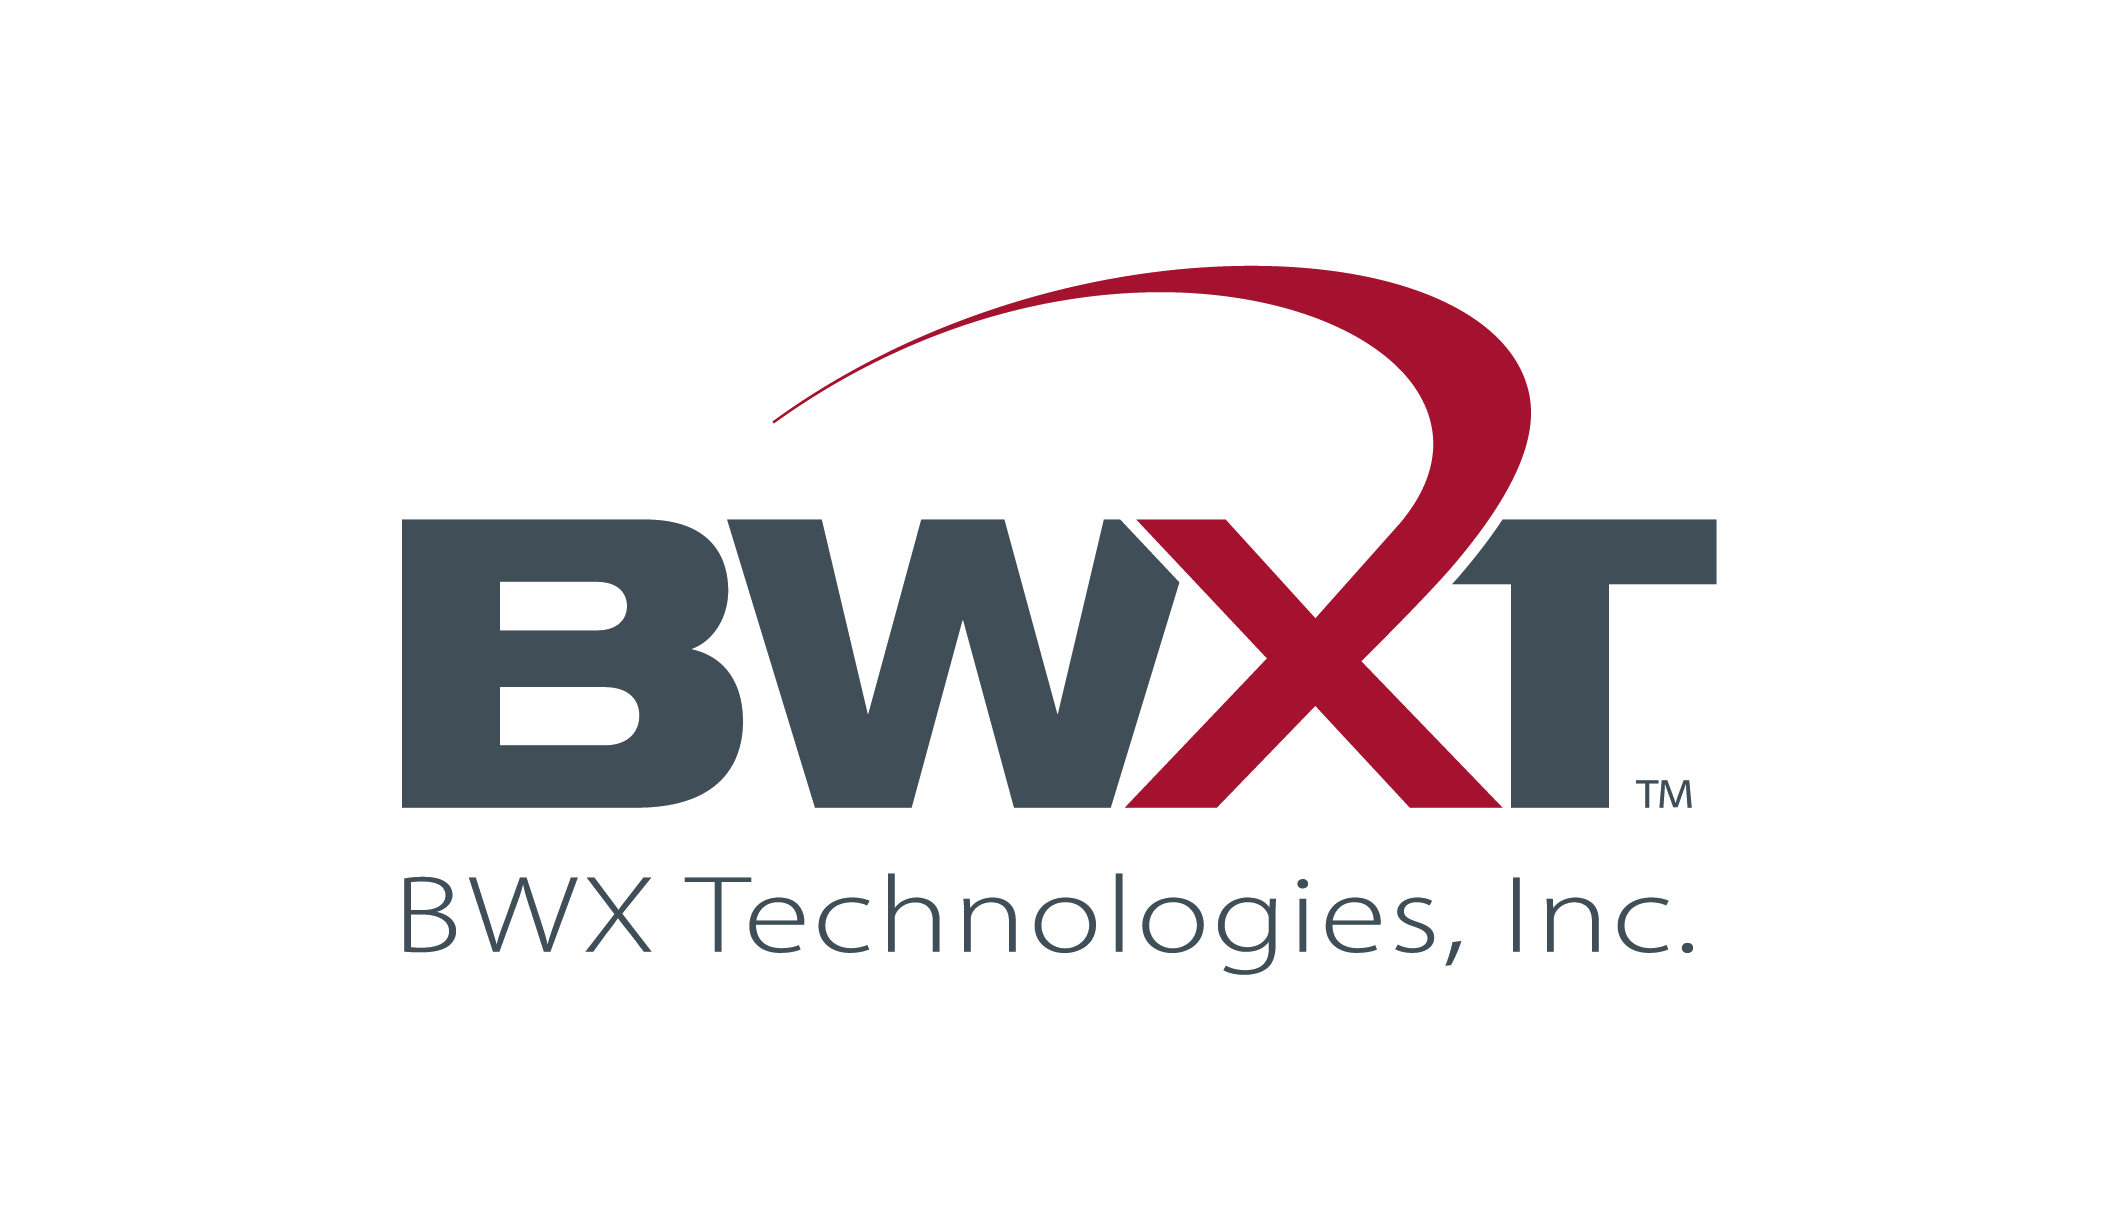 BWX Technologies, Inc. - Blair Moseley Corporate Excellence Award - 2018BWXT has been a faithful supporter of CASA for many years. This past year, they sponsored both of CASA's major fundraising events, matched employee donations to CASA, and even paid for their employees and family members to run the CASA Superhero Run. We are grateful for their ongoing support of our mission.